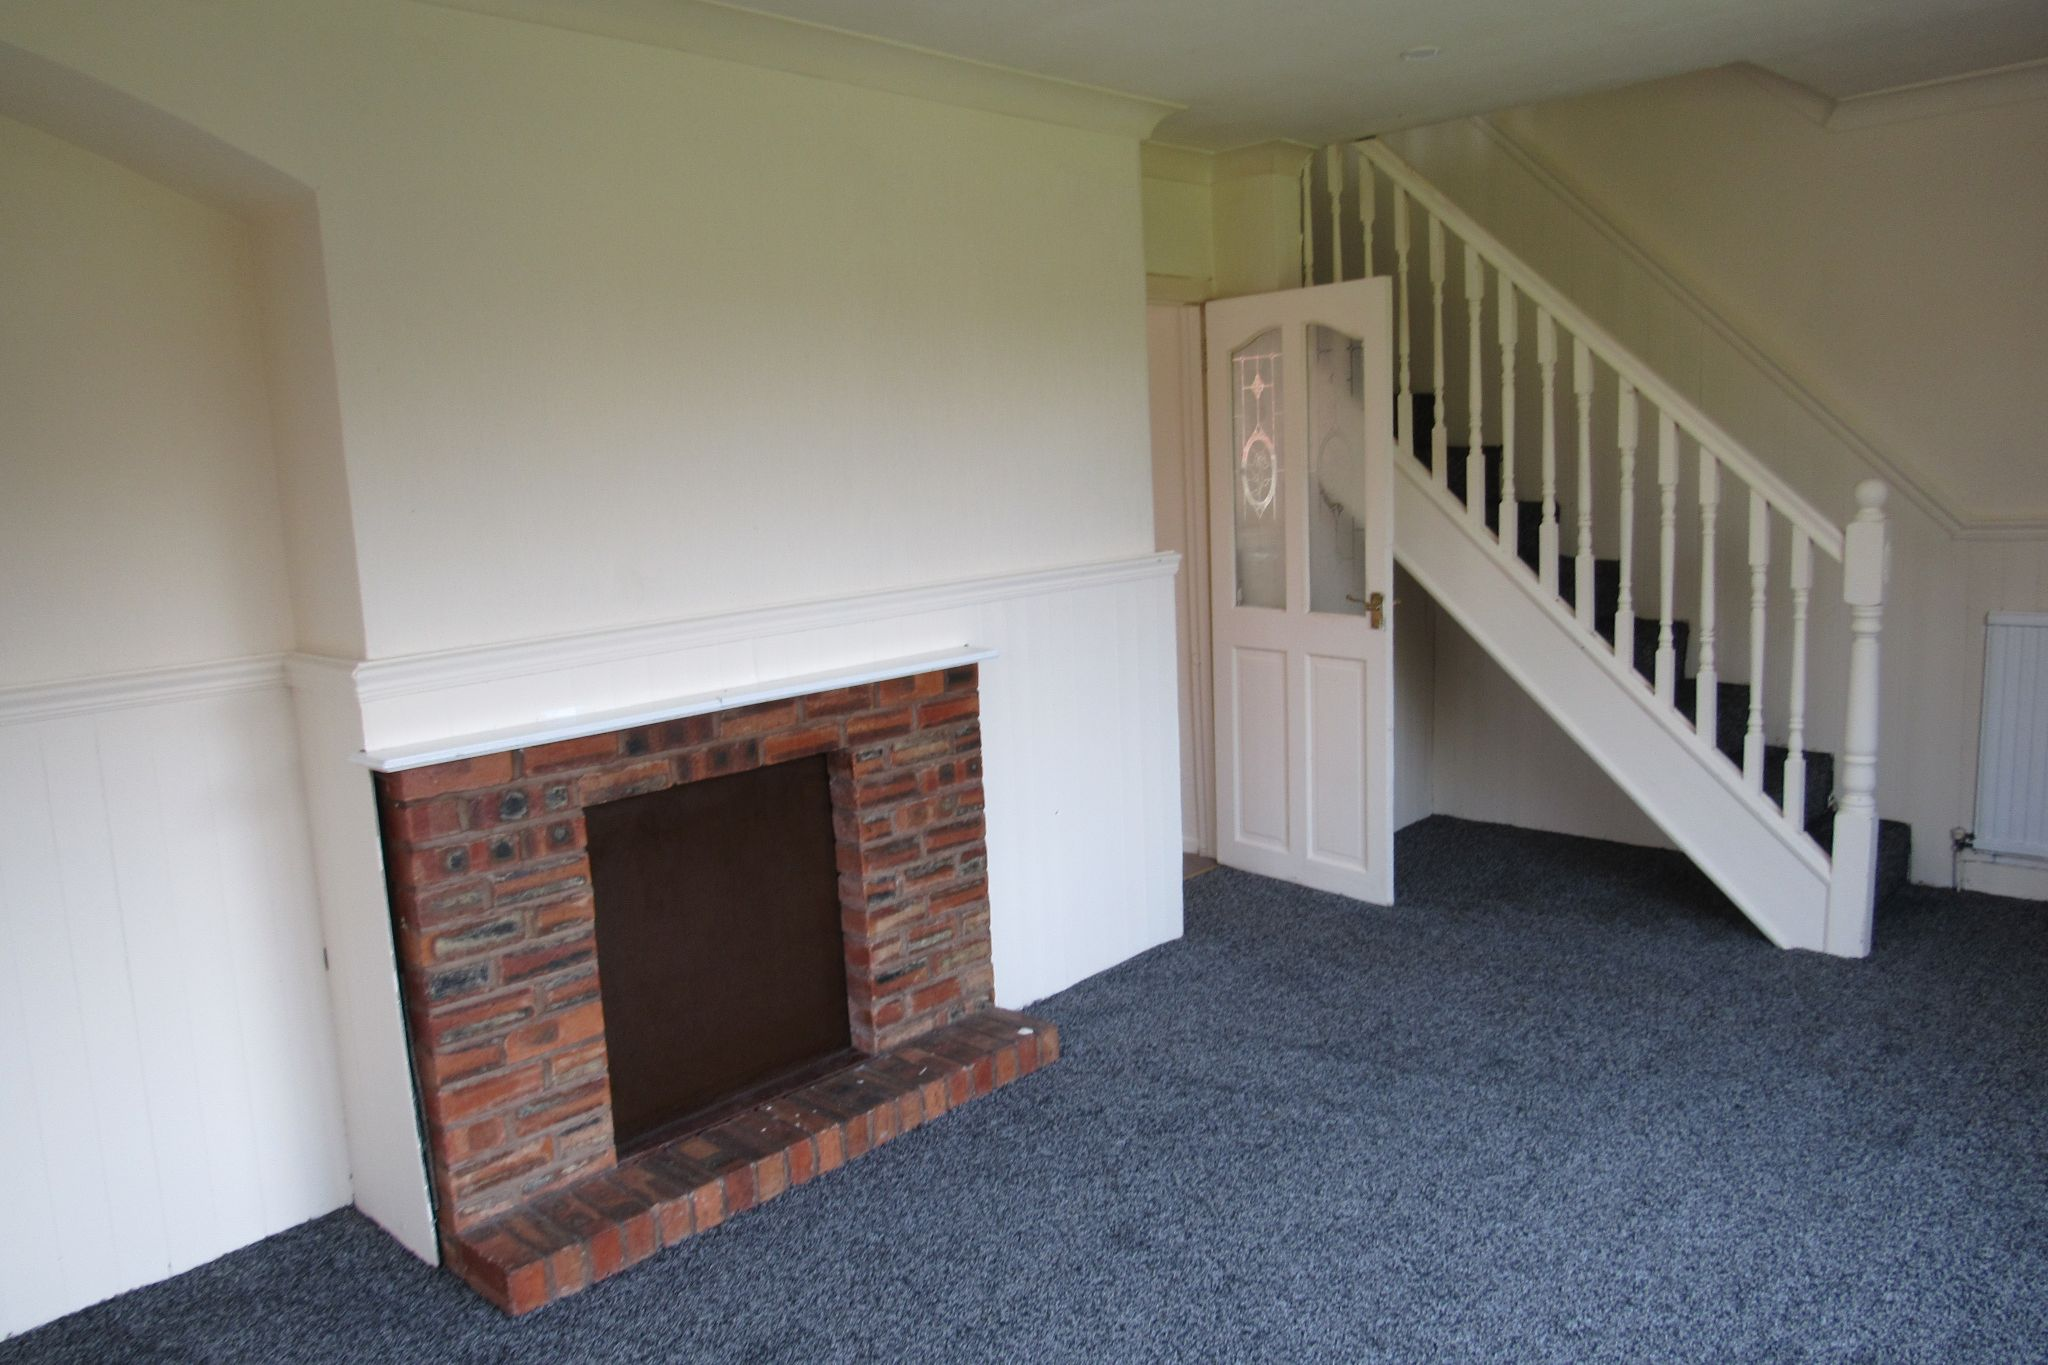 3 bedroom semi-detached house SSTC in Manchester - Photograph 7.